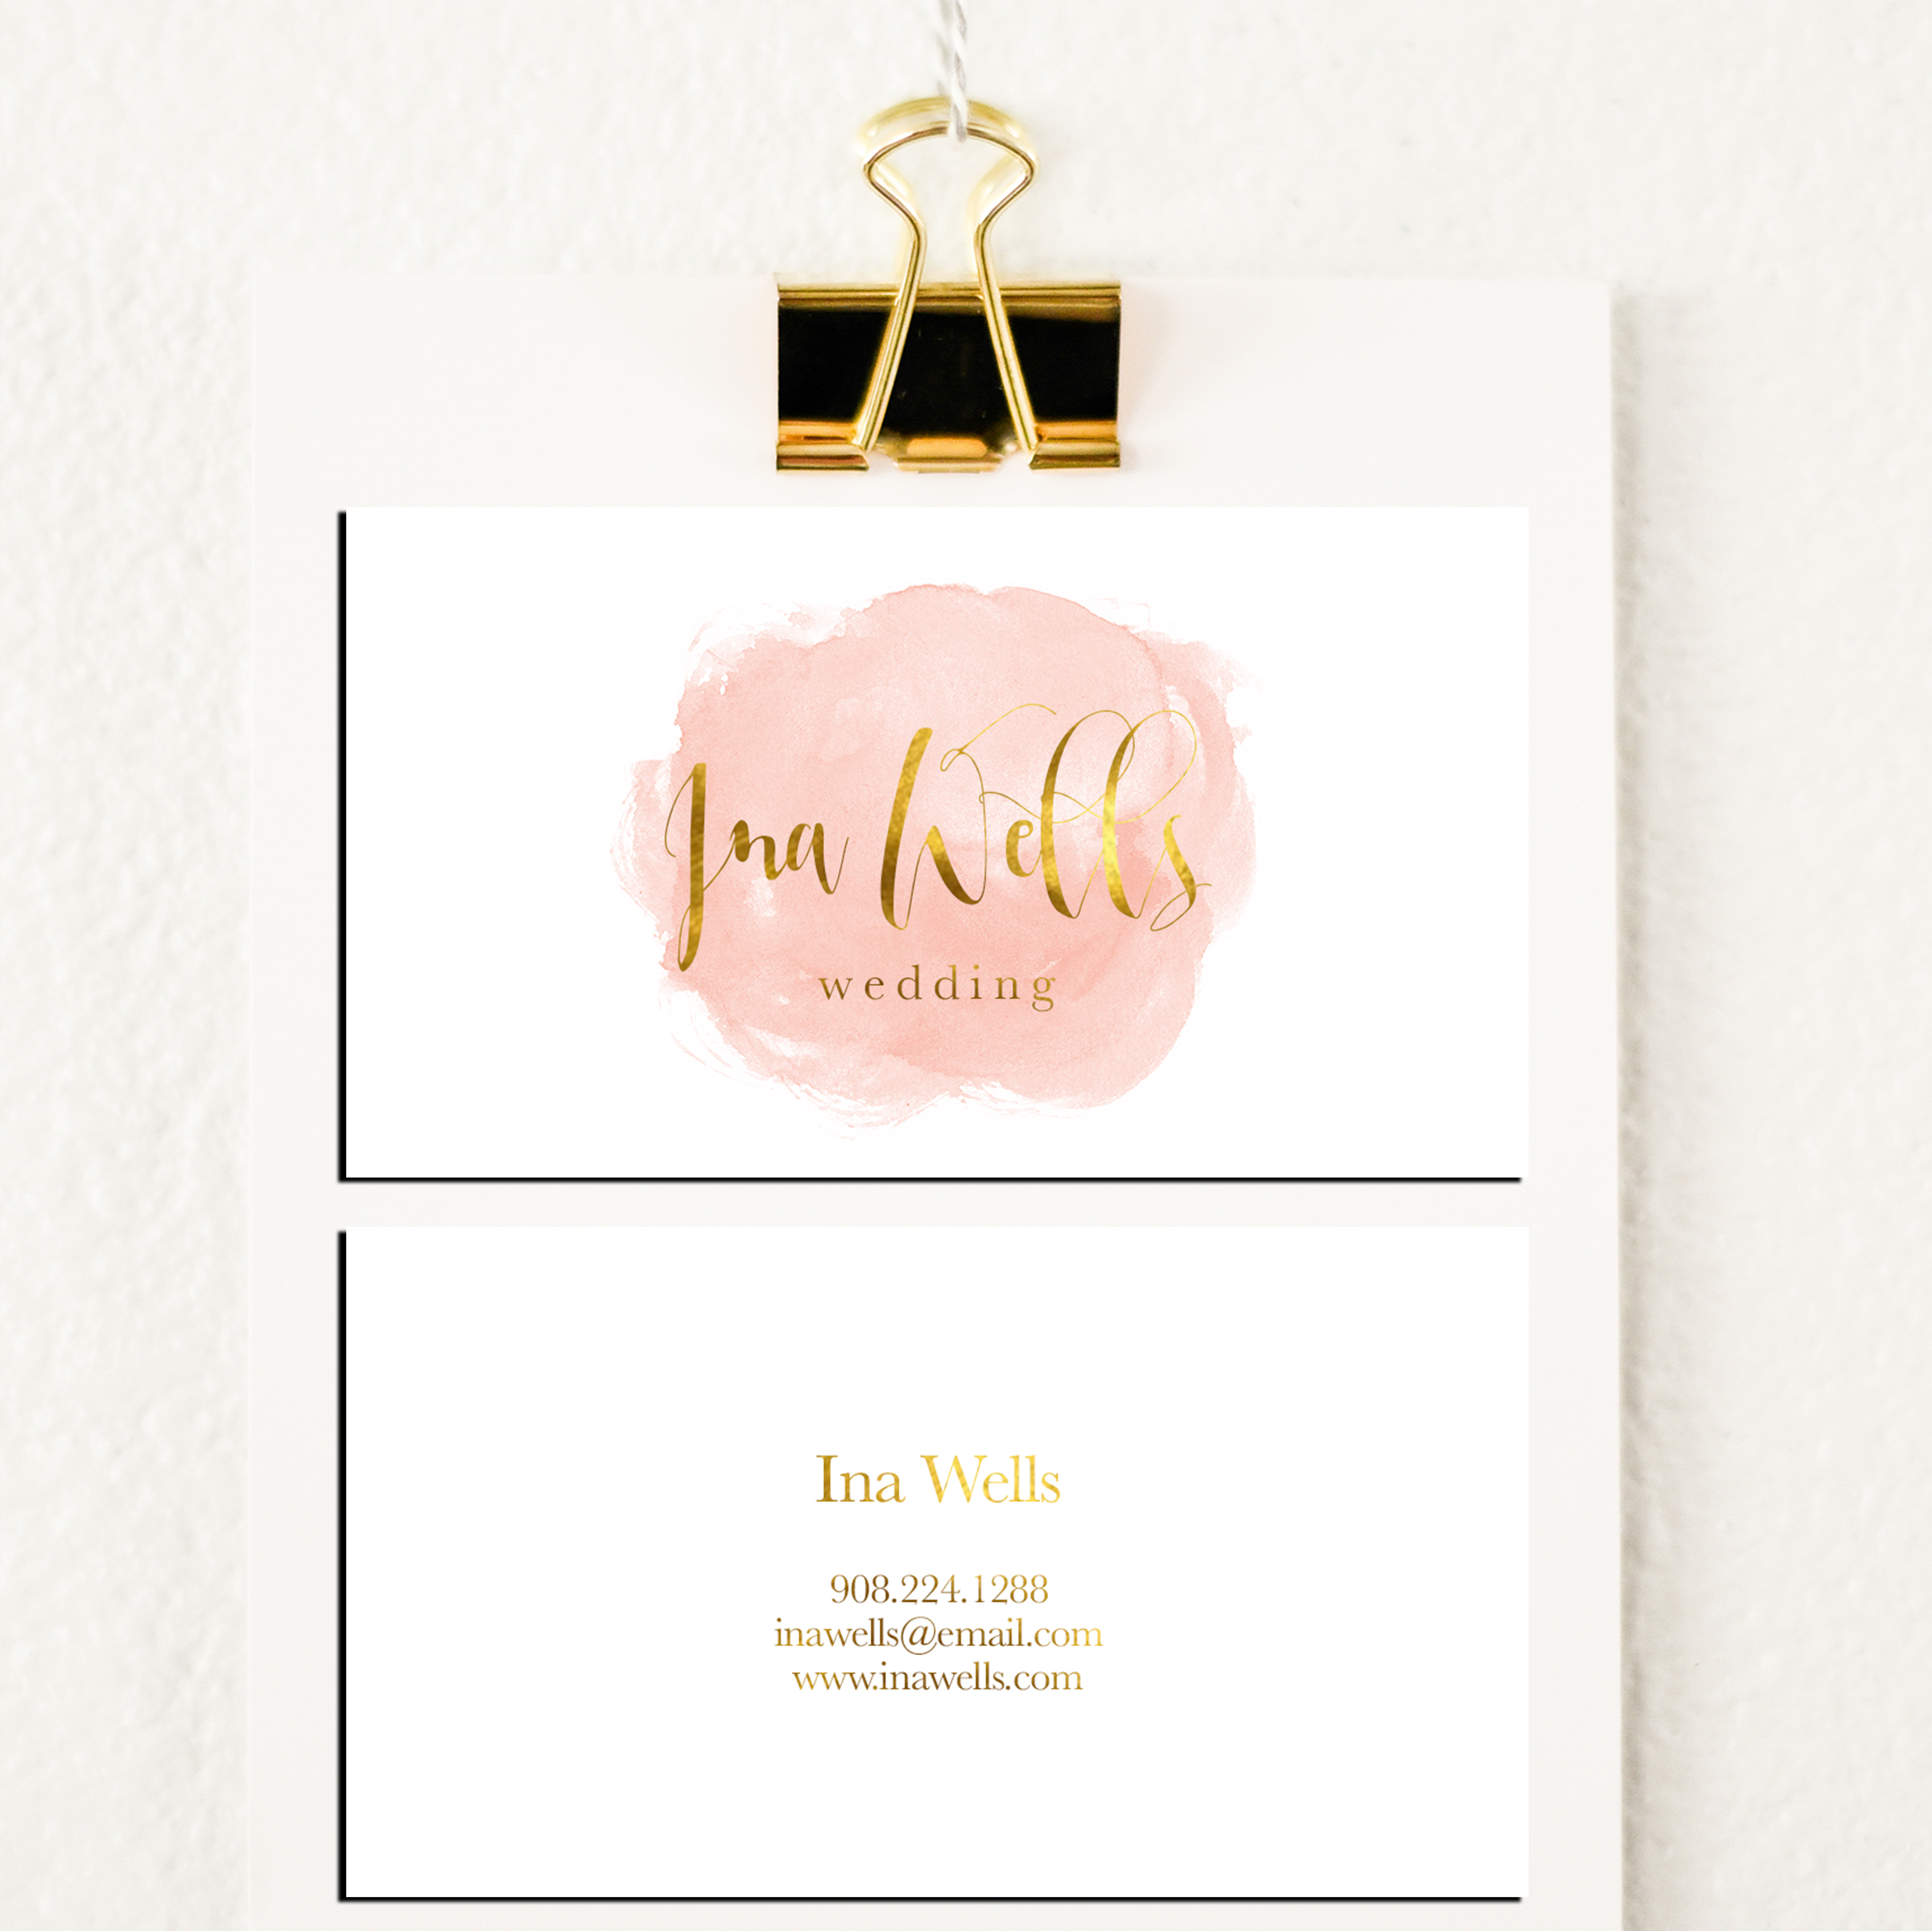 Watercolour Wedding Business Card Template Inspiration Cardfaves